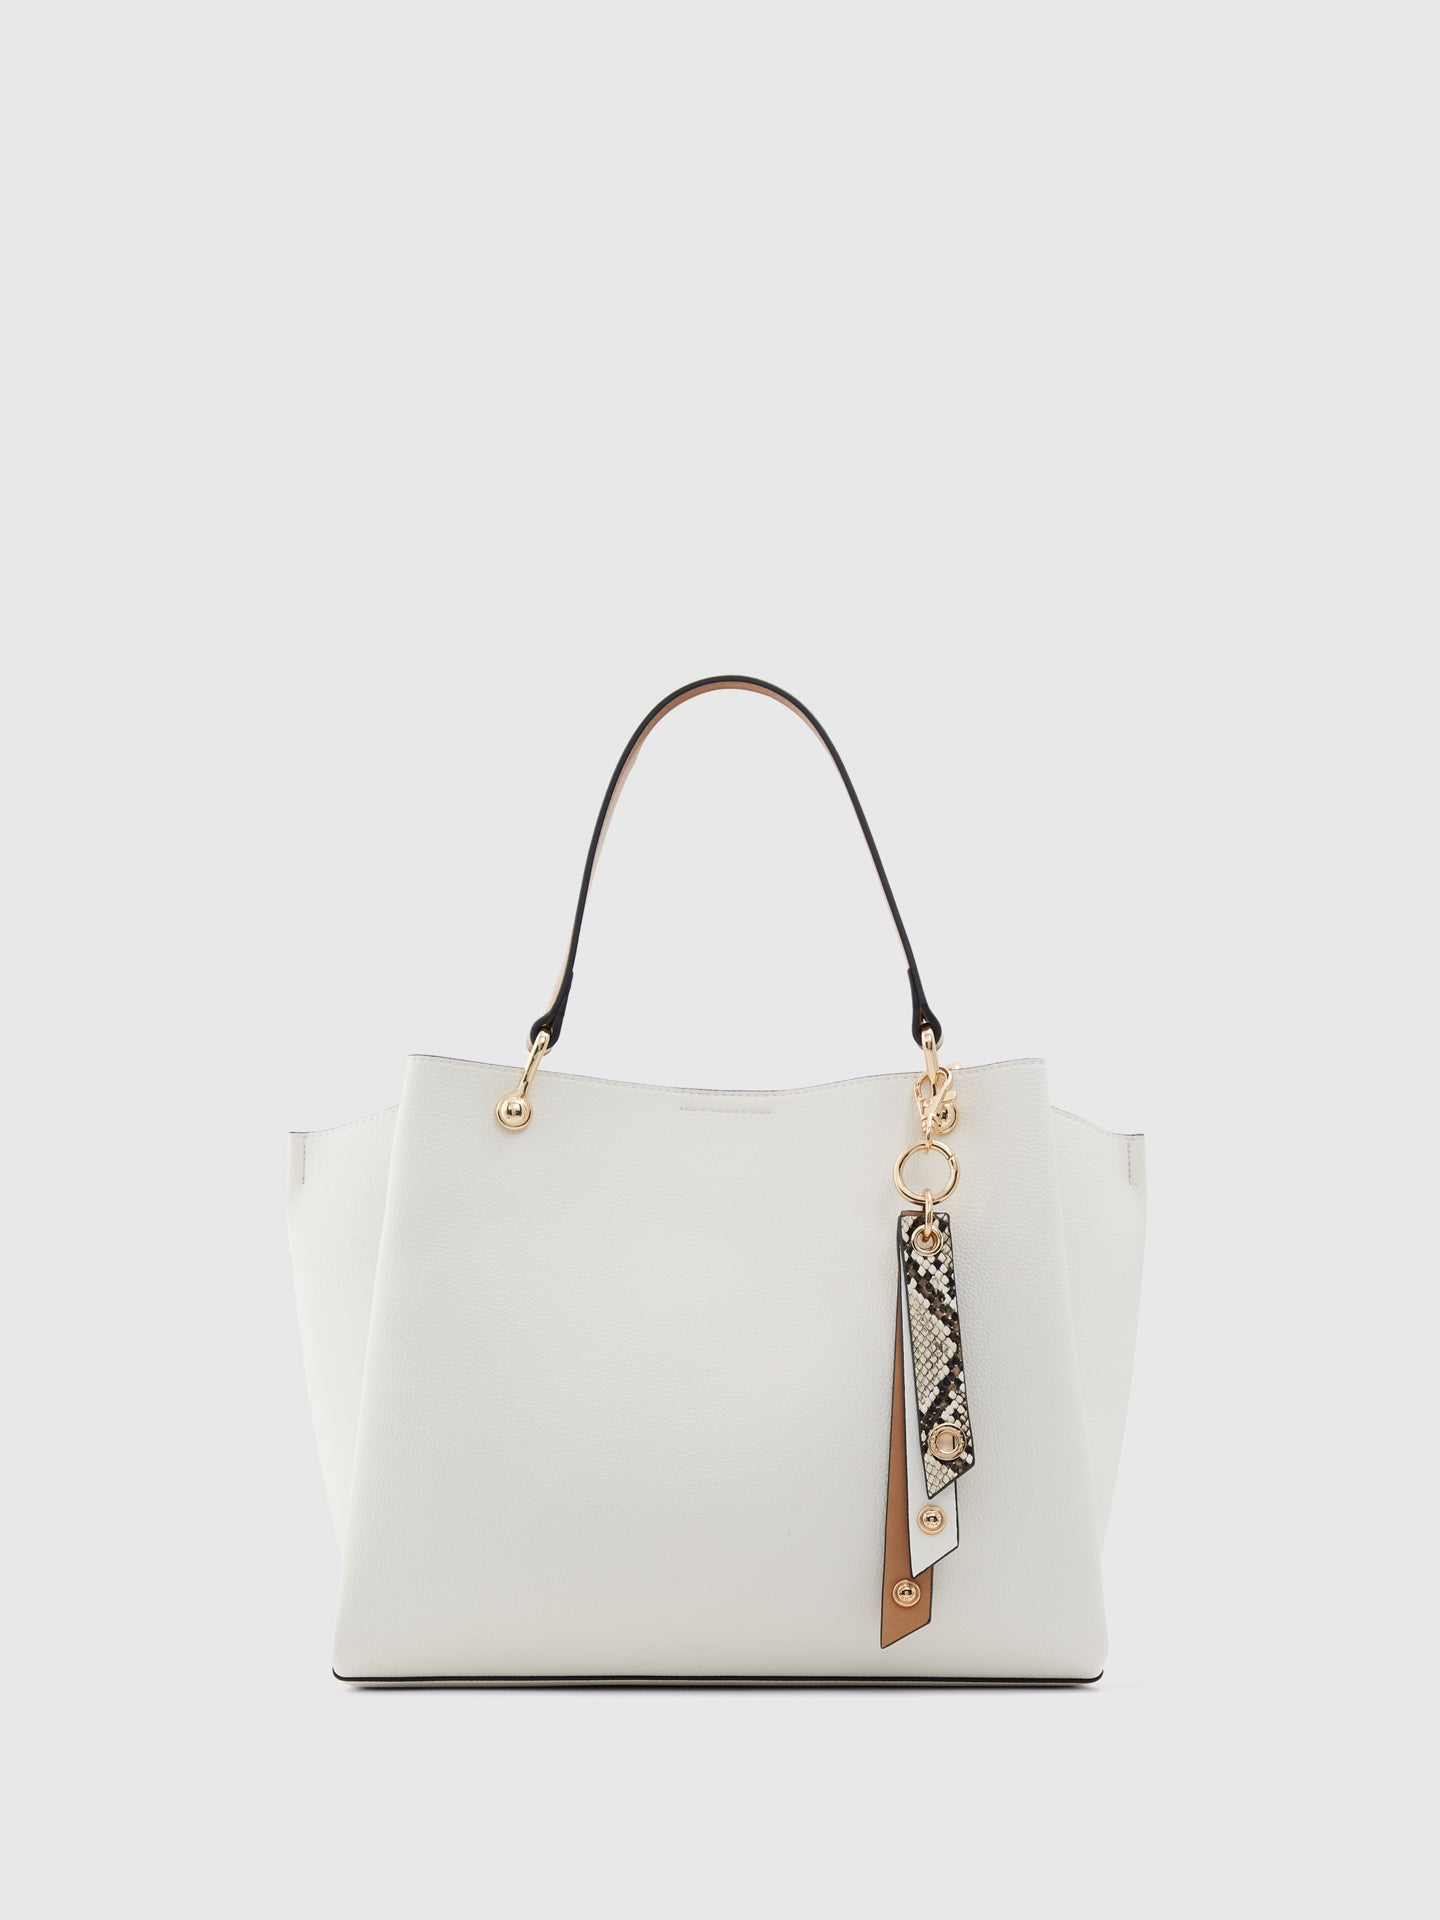 Aldo White Shoulder Bag